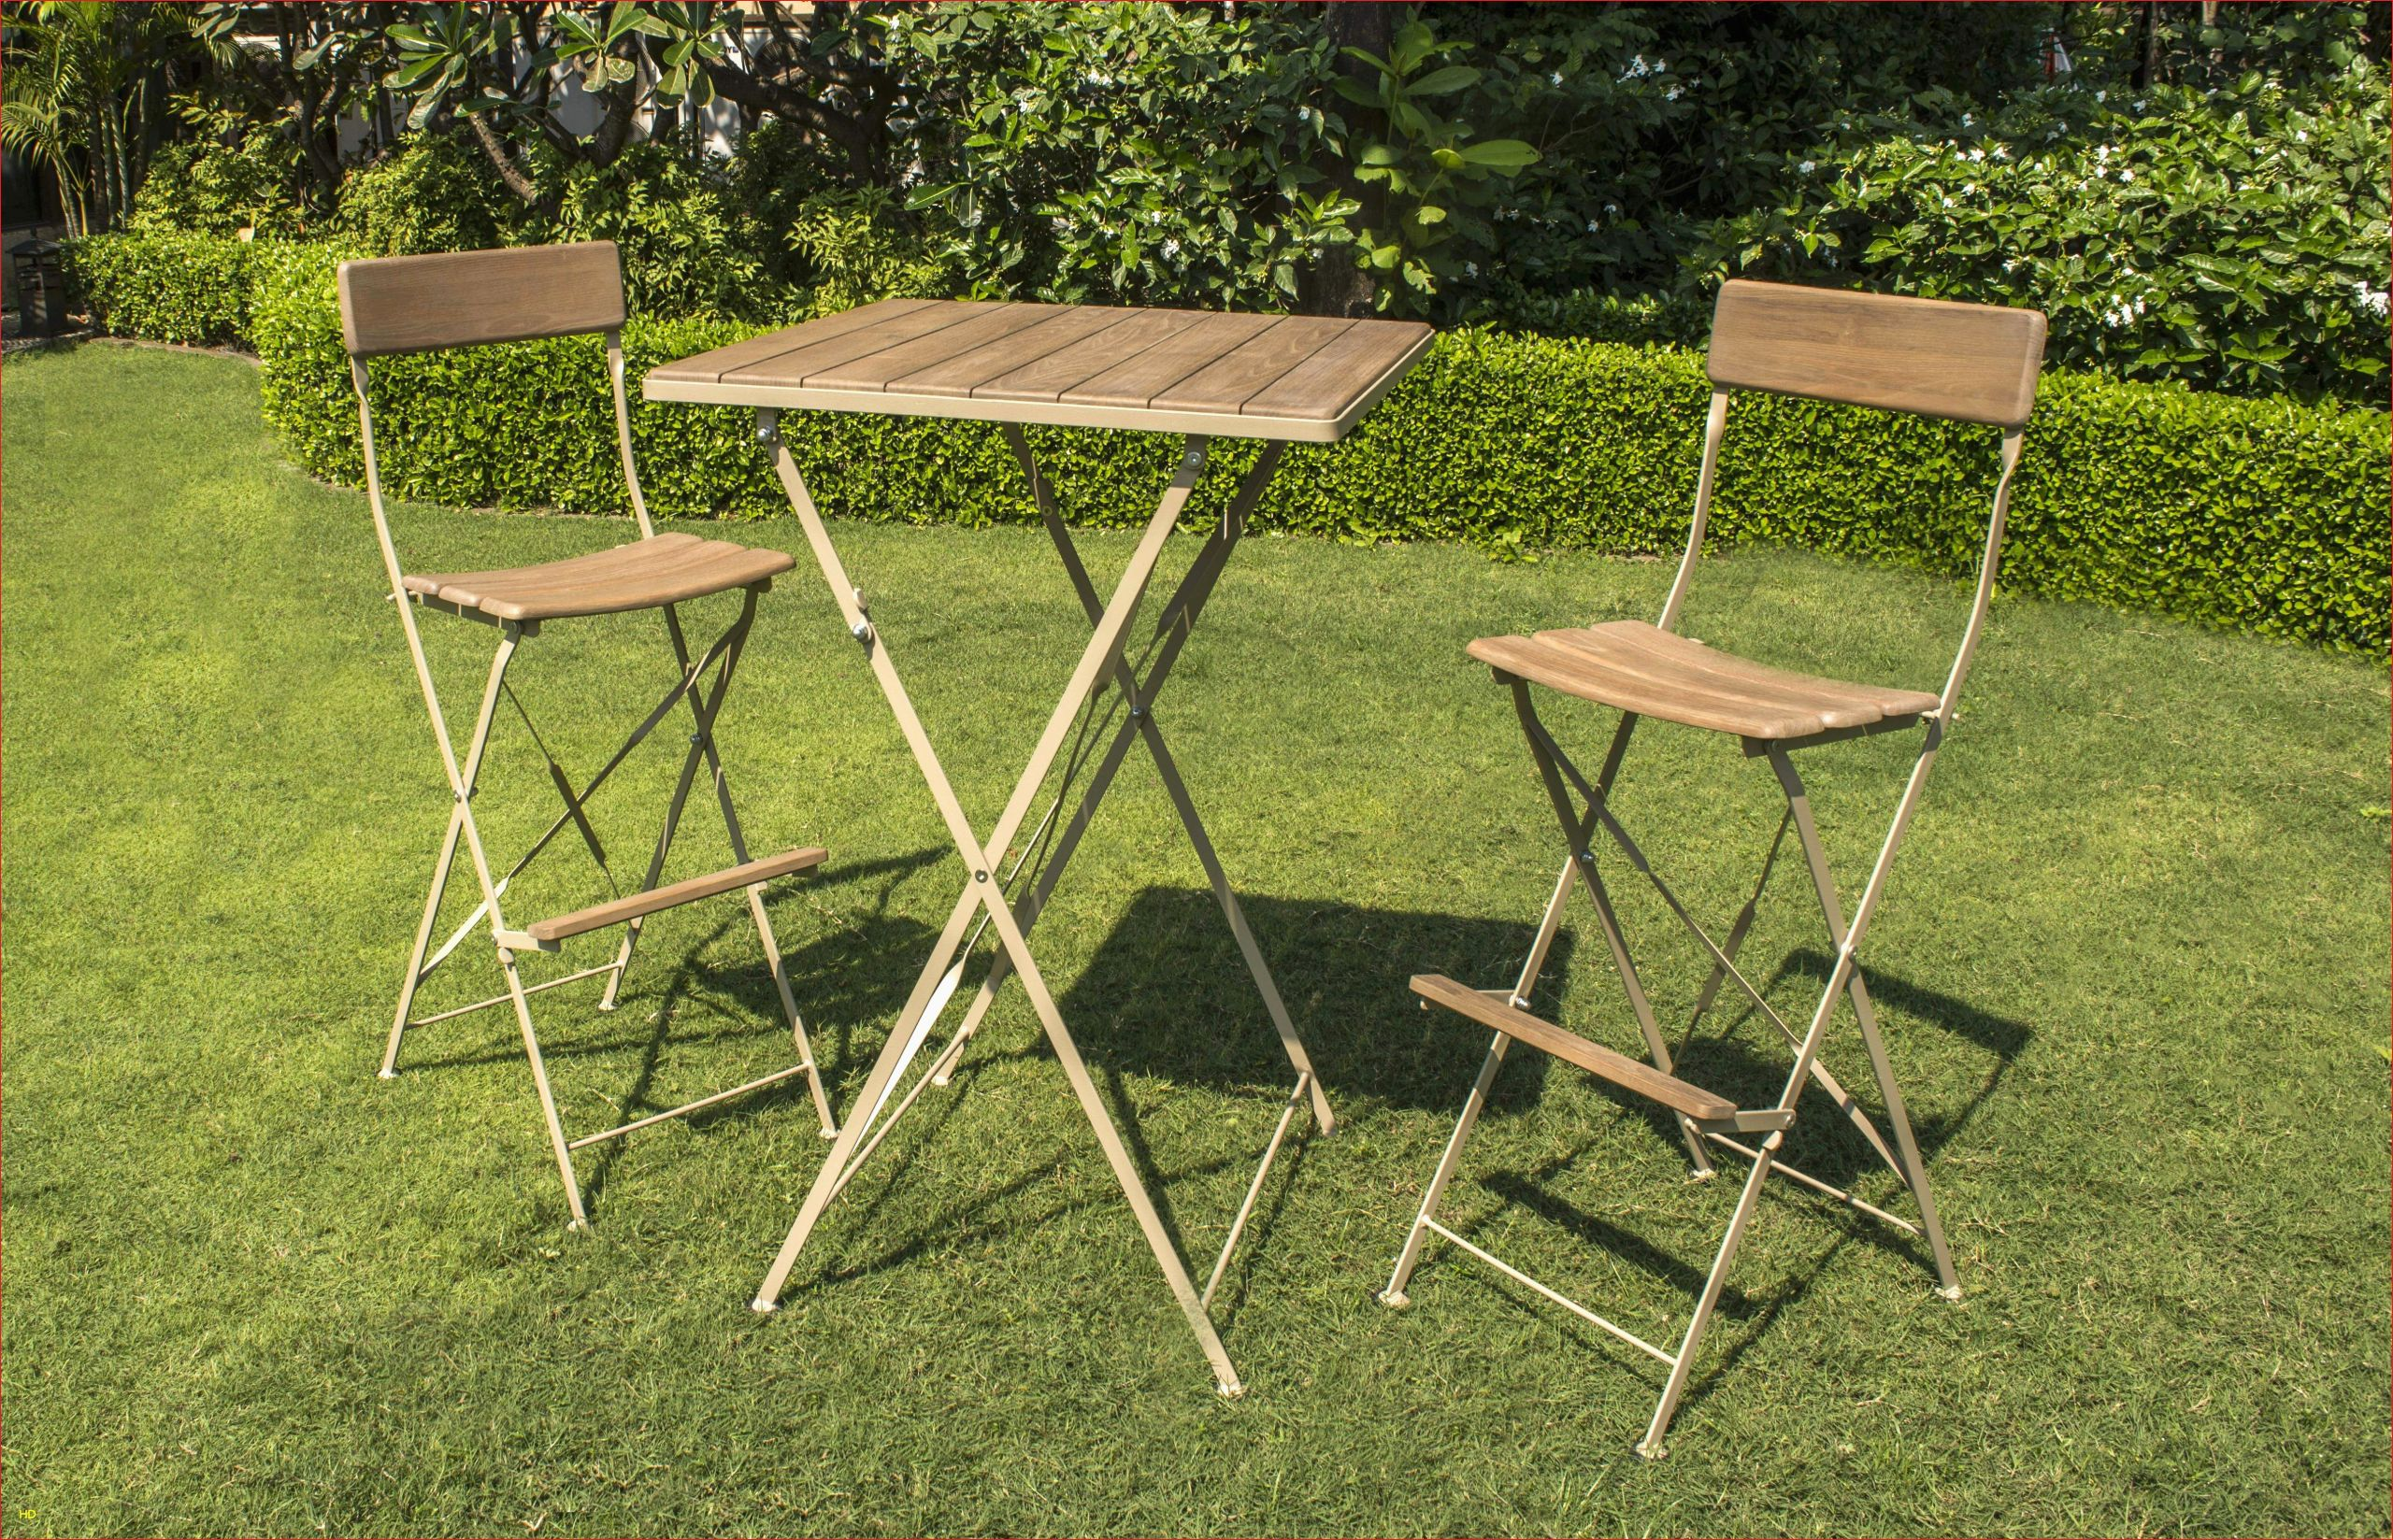 Table Banc Bois Exterieur Best Of Jardin Archives Francesginsberg Of 21 Charmant Table Banc Bois Exterieur